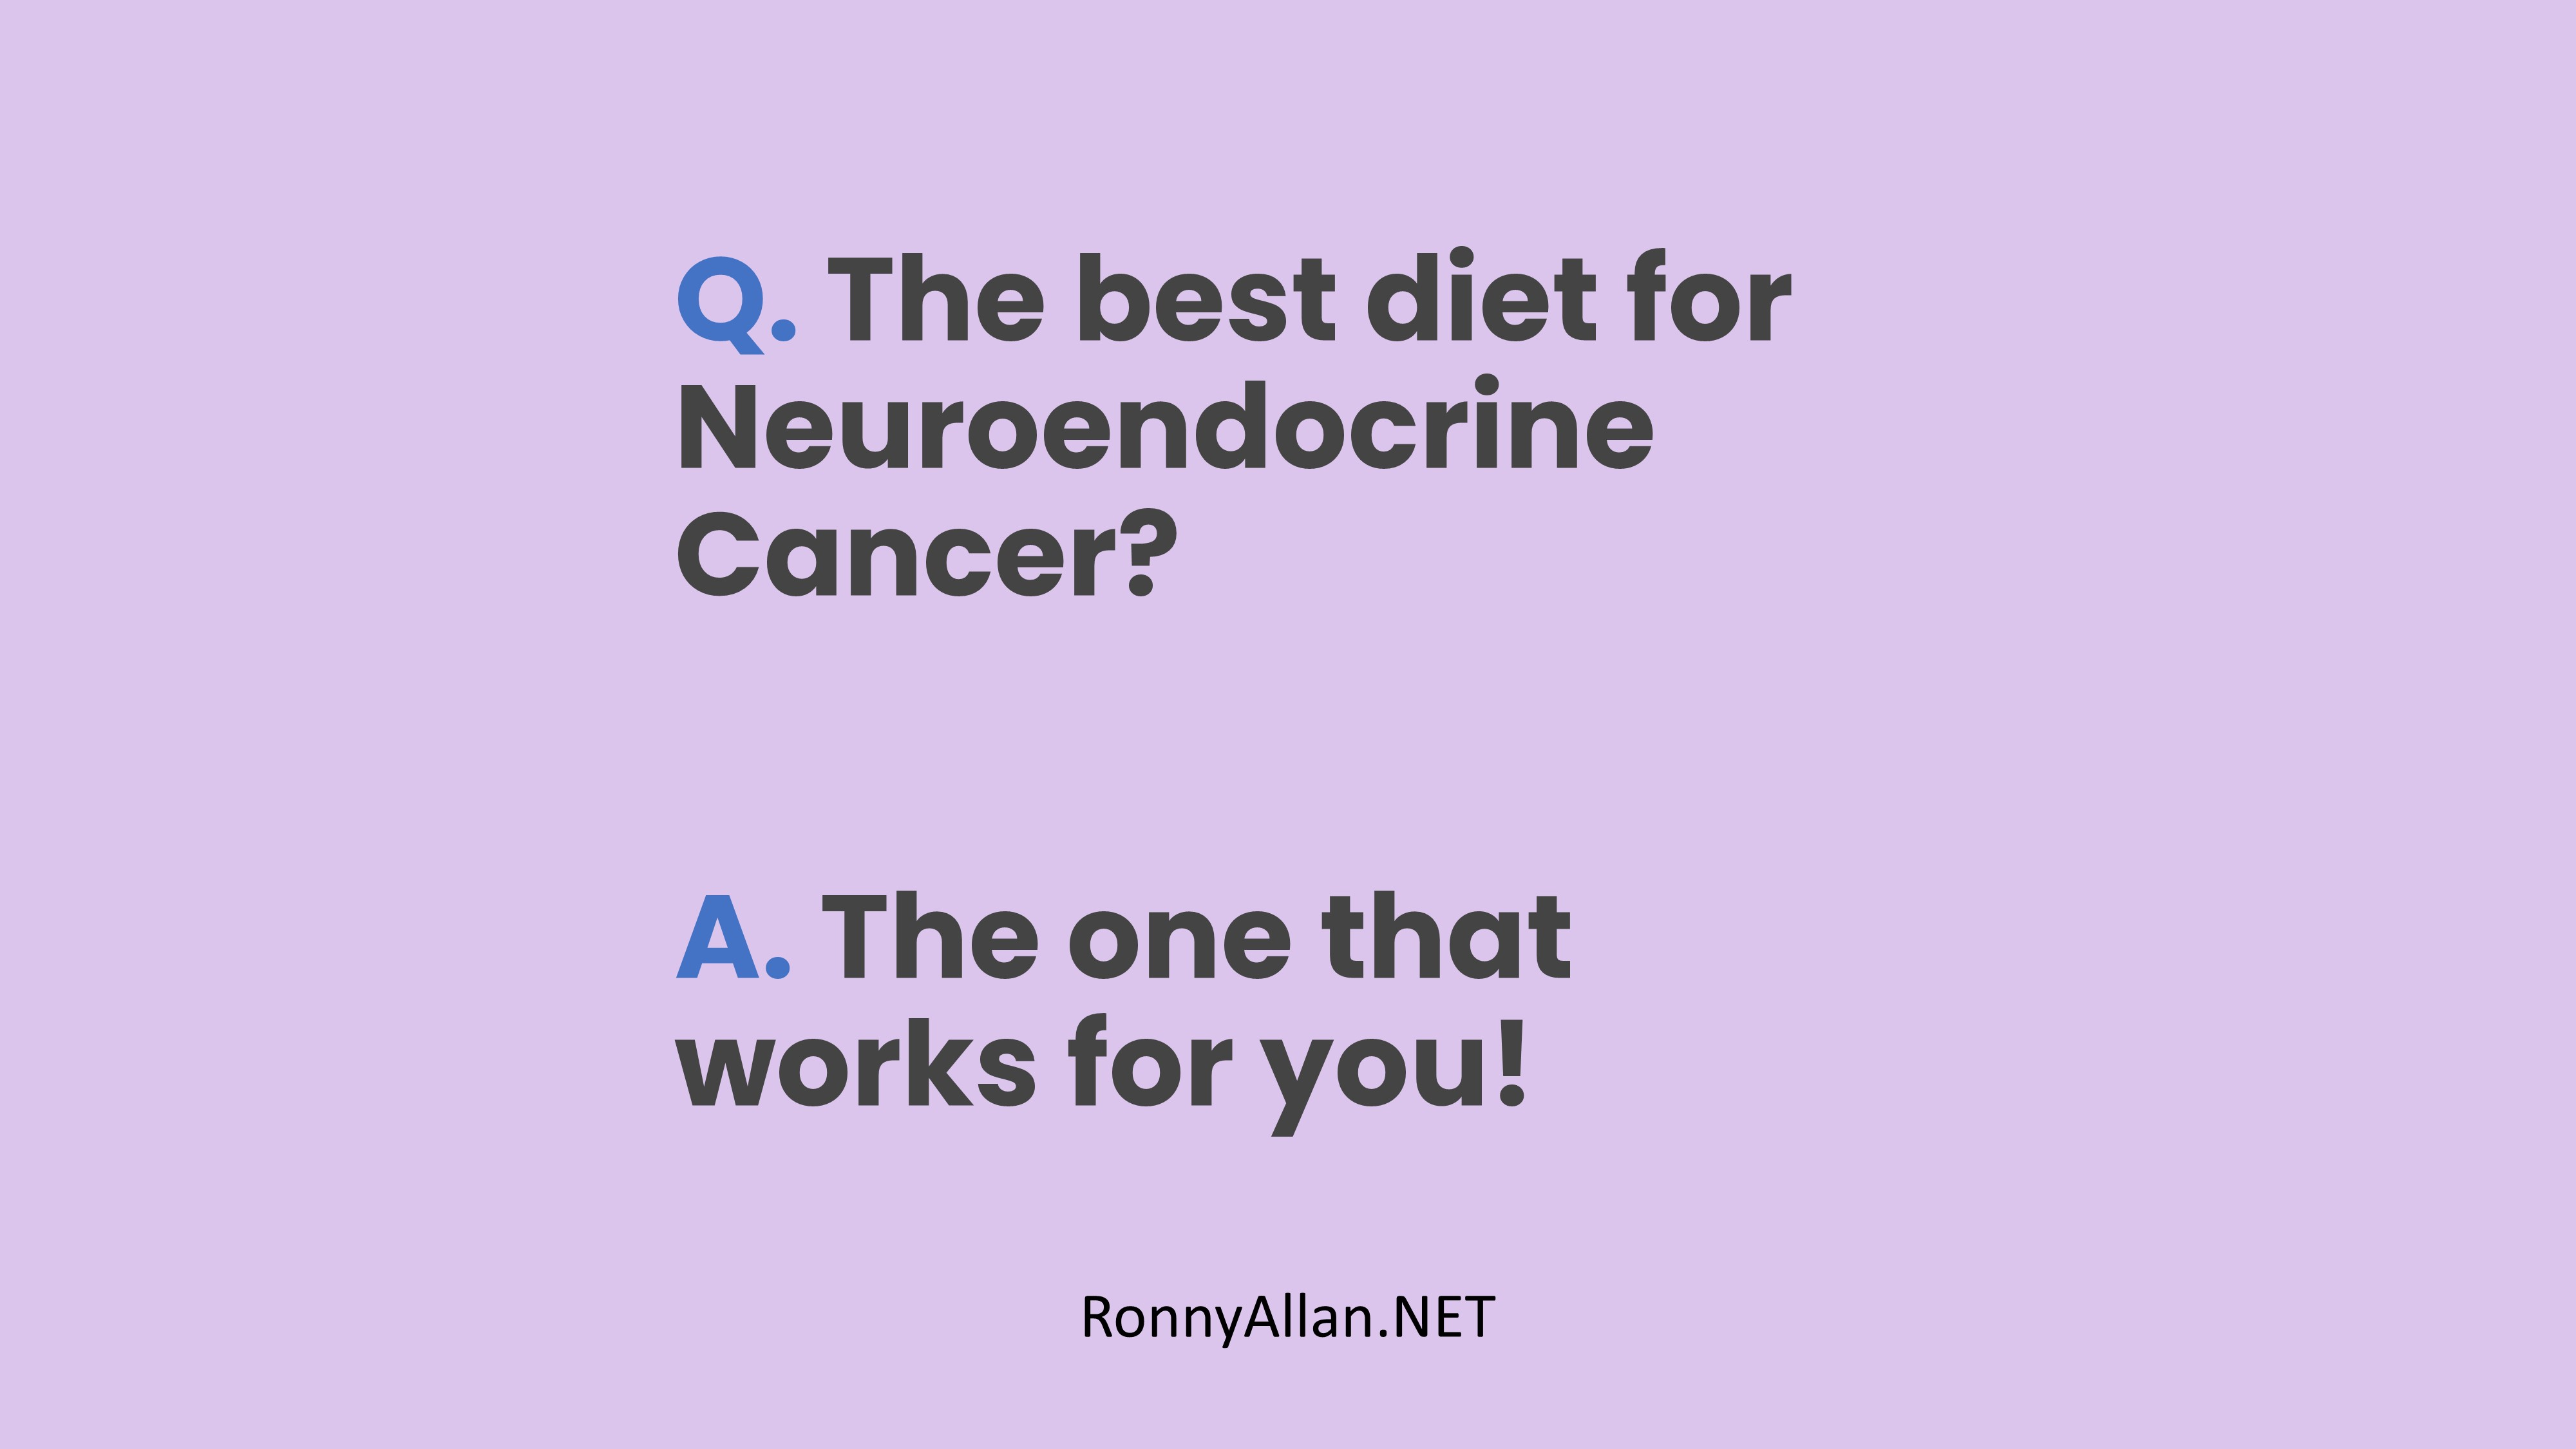 Q. The best diet for Neuroendocrine Cancer? A. The one that works for you.